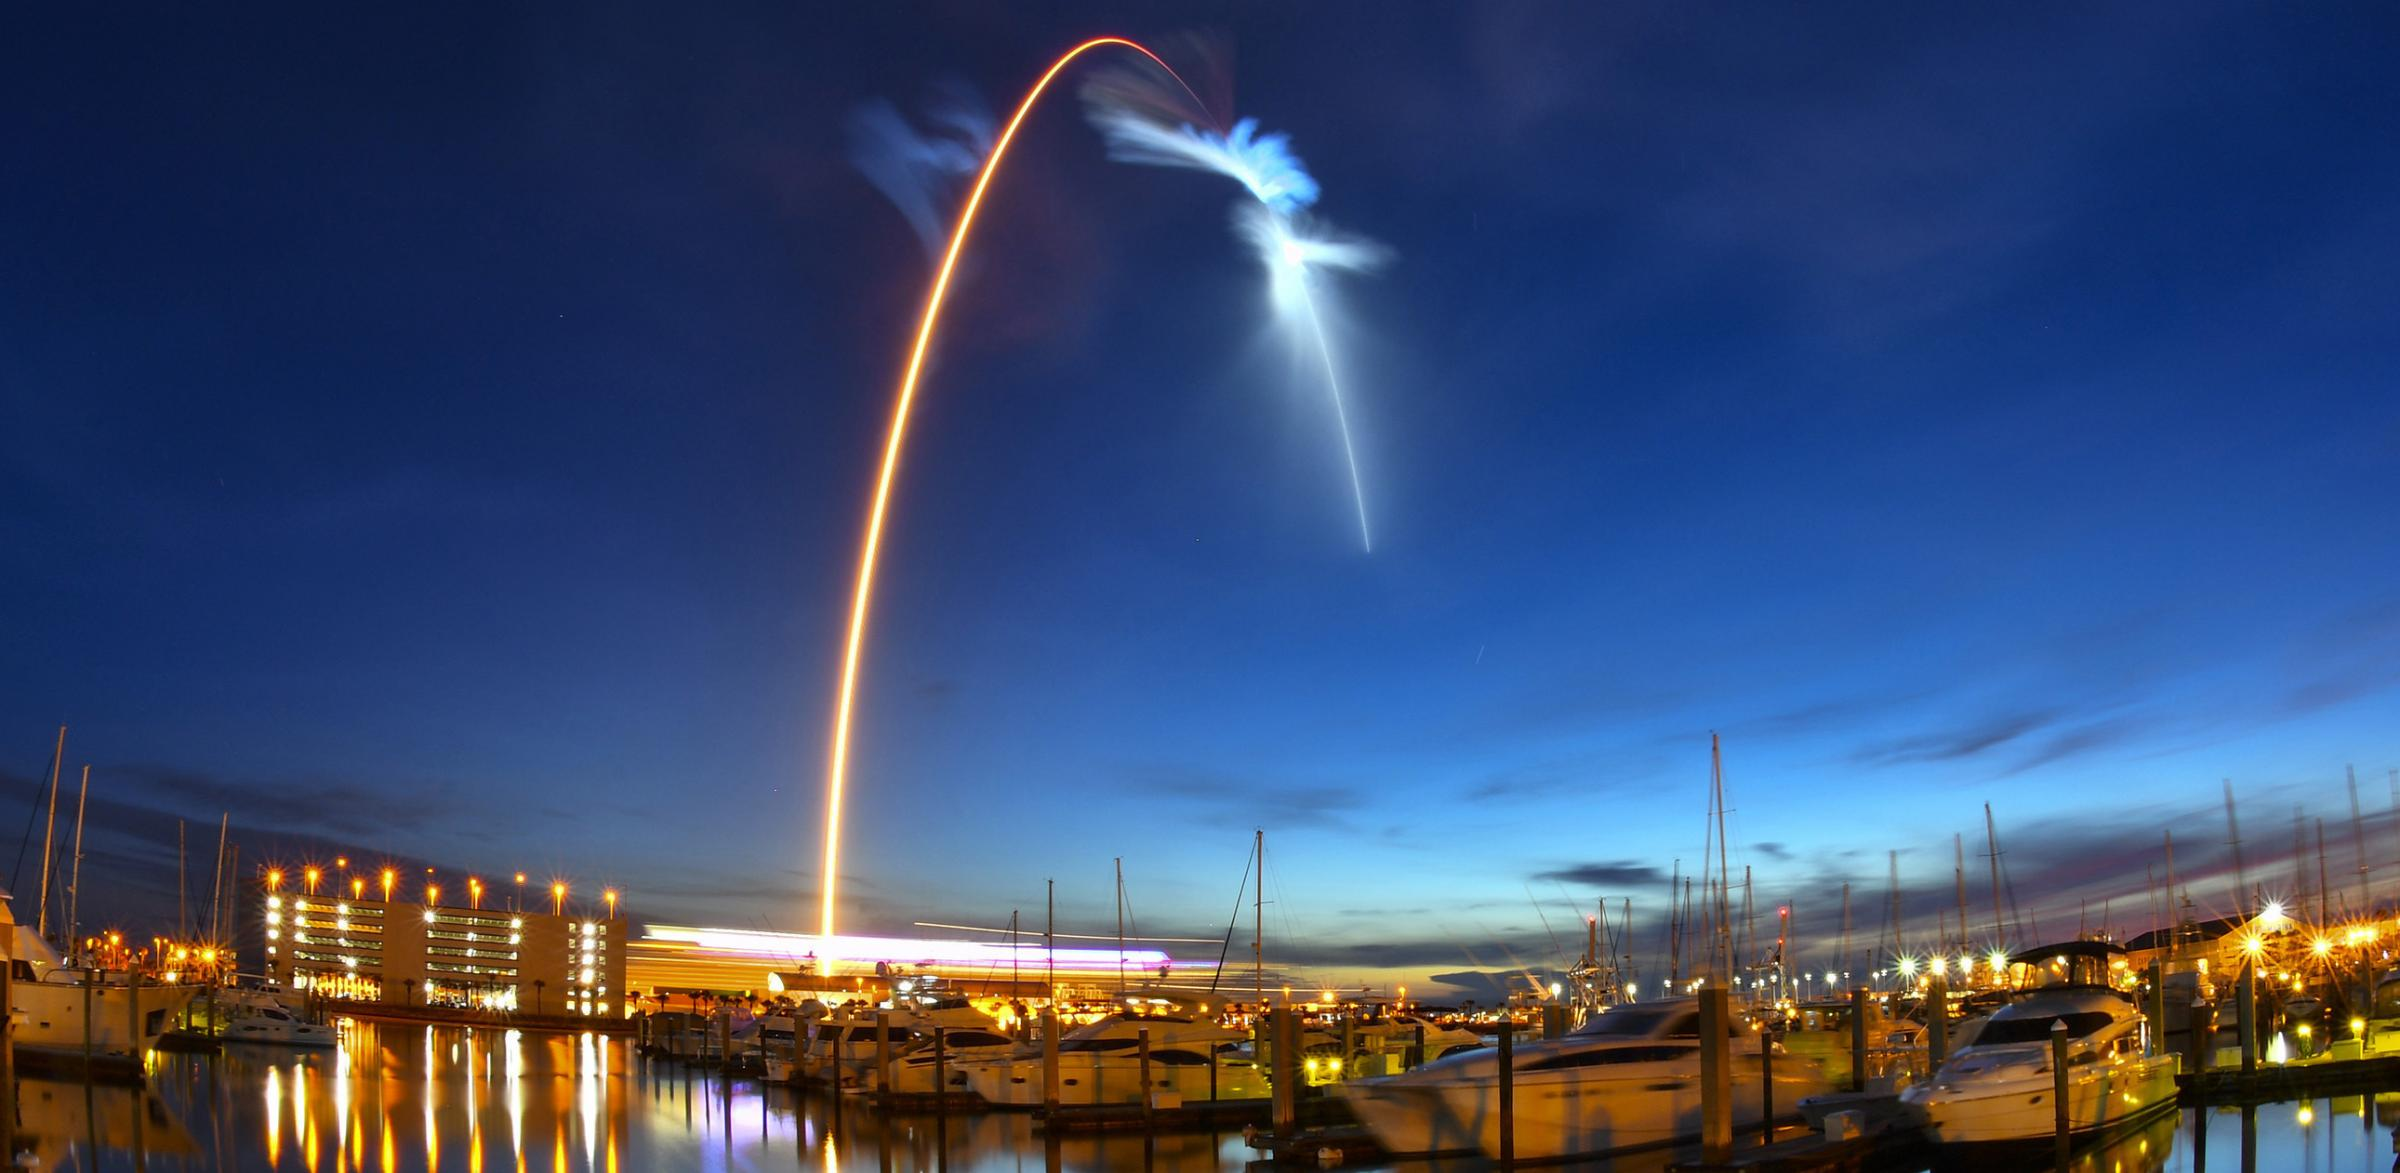 The launch took place at Cape Canaveral in Florida